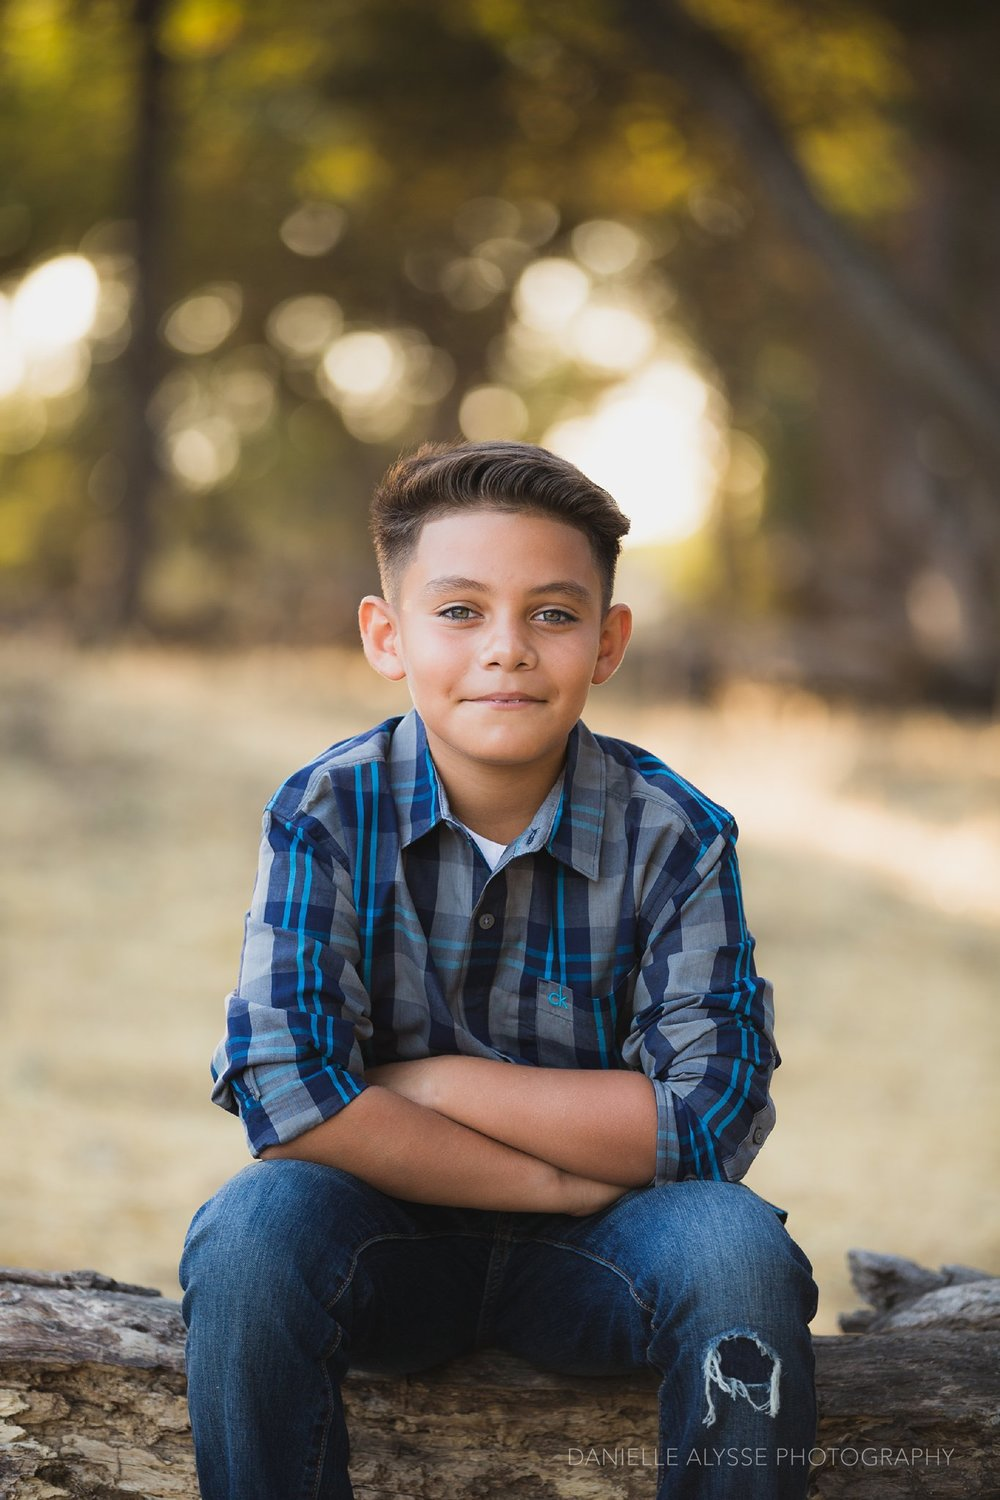 171001_blog_fall_roseville_blue_oaks_park_claudia_danielle_alysse_photography_sacramento_photographer16_WEB.jpg